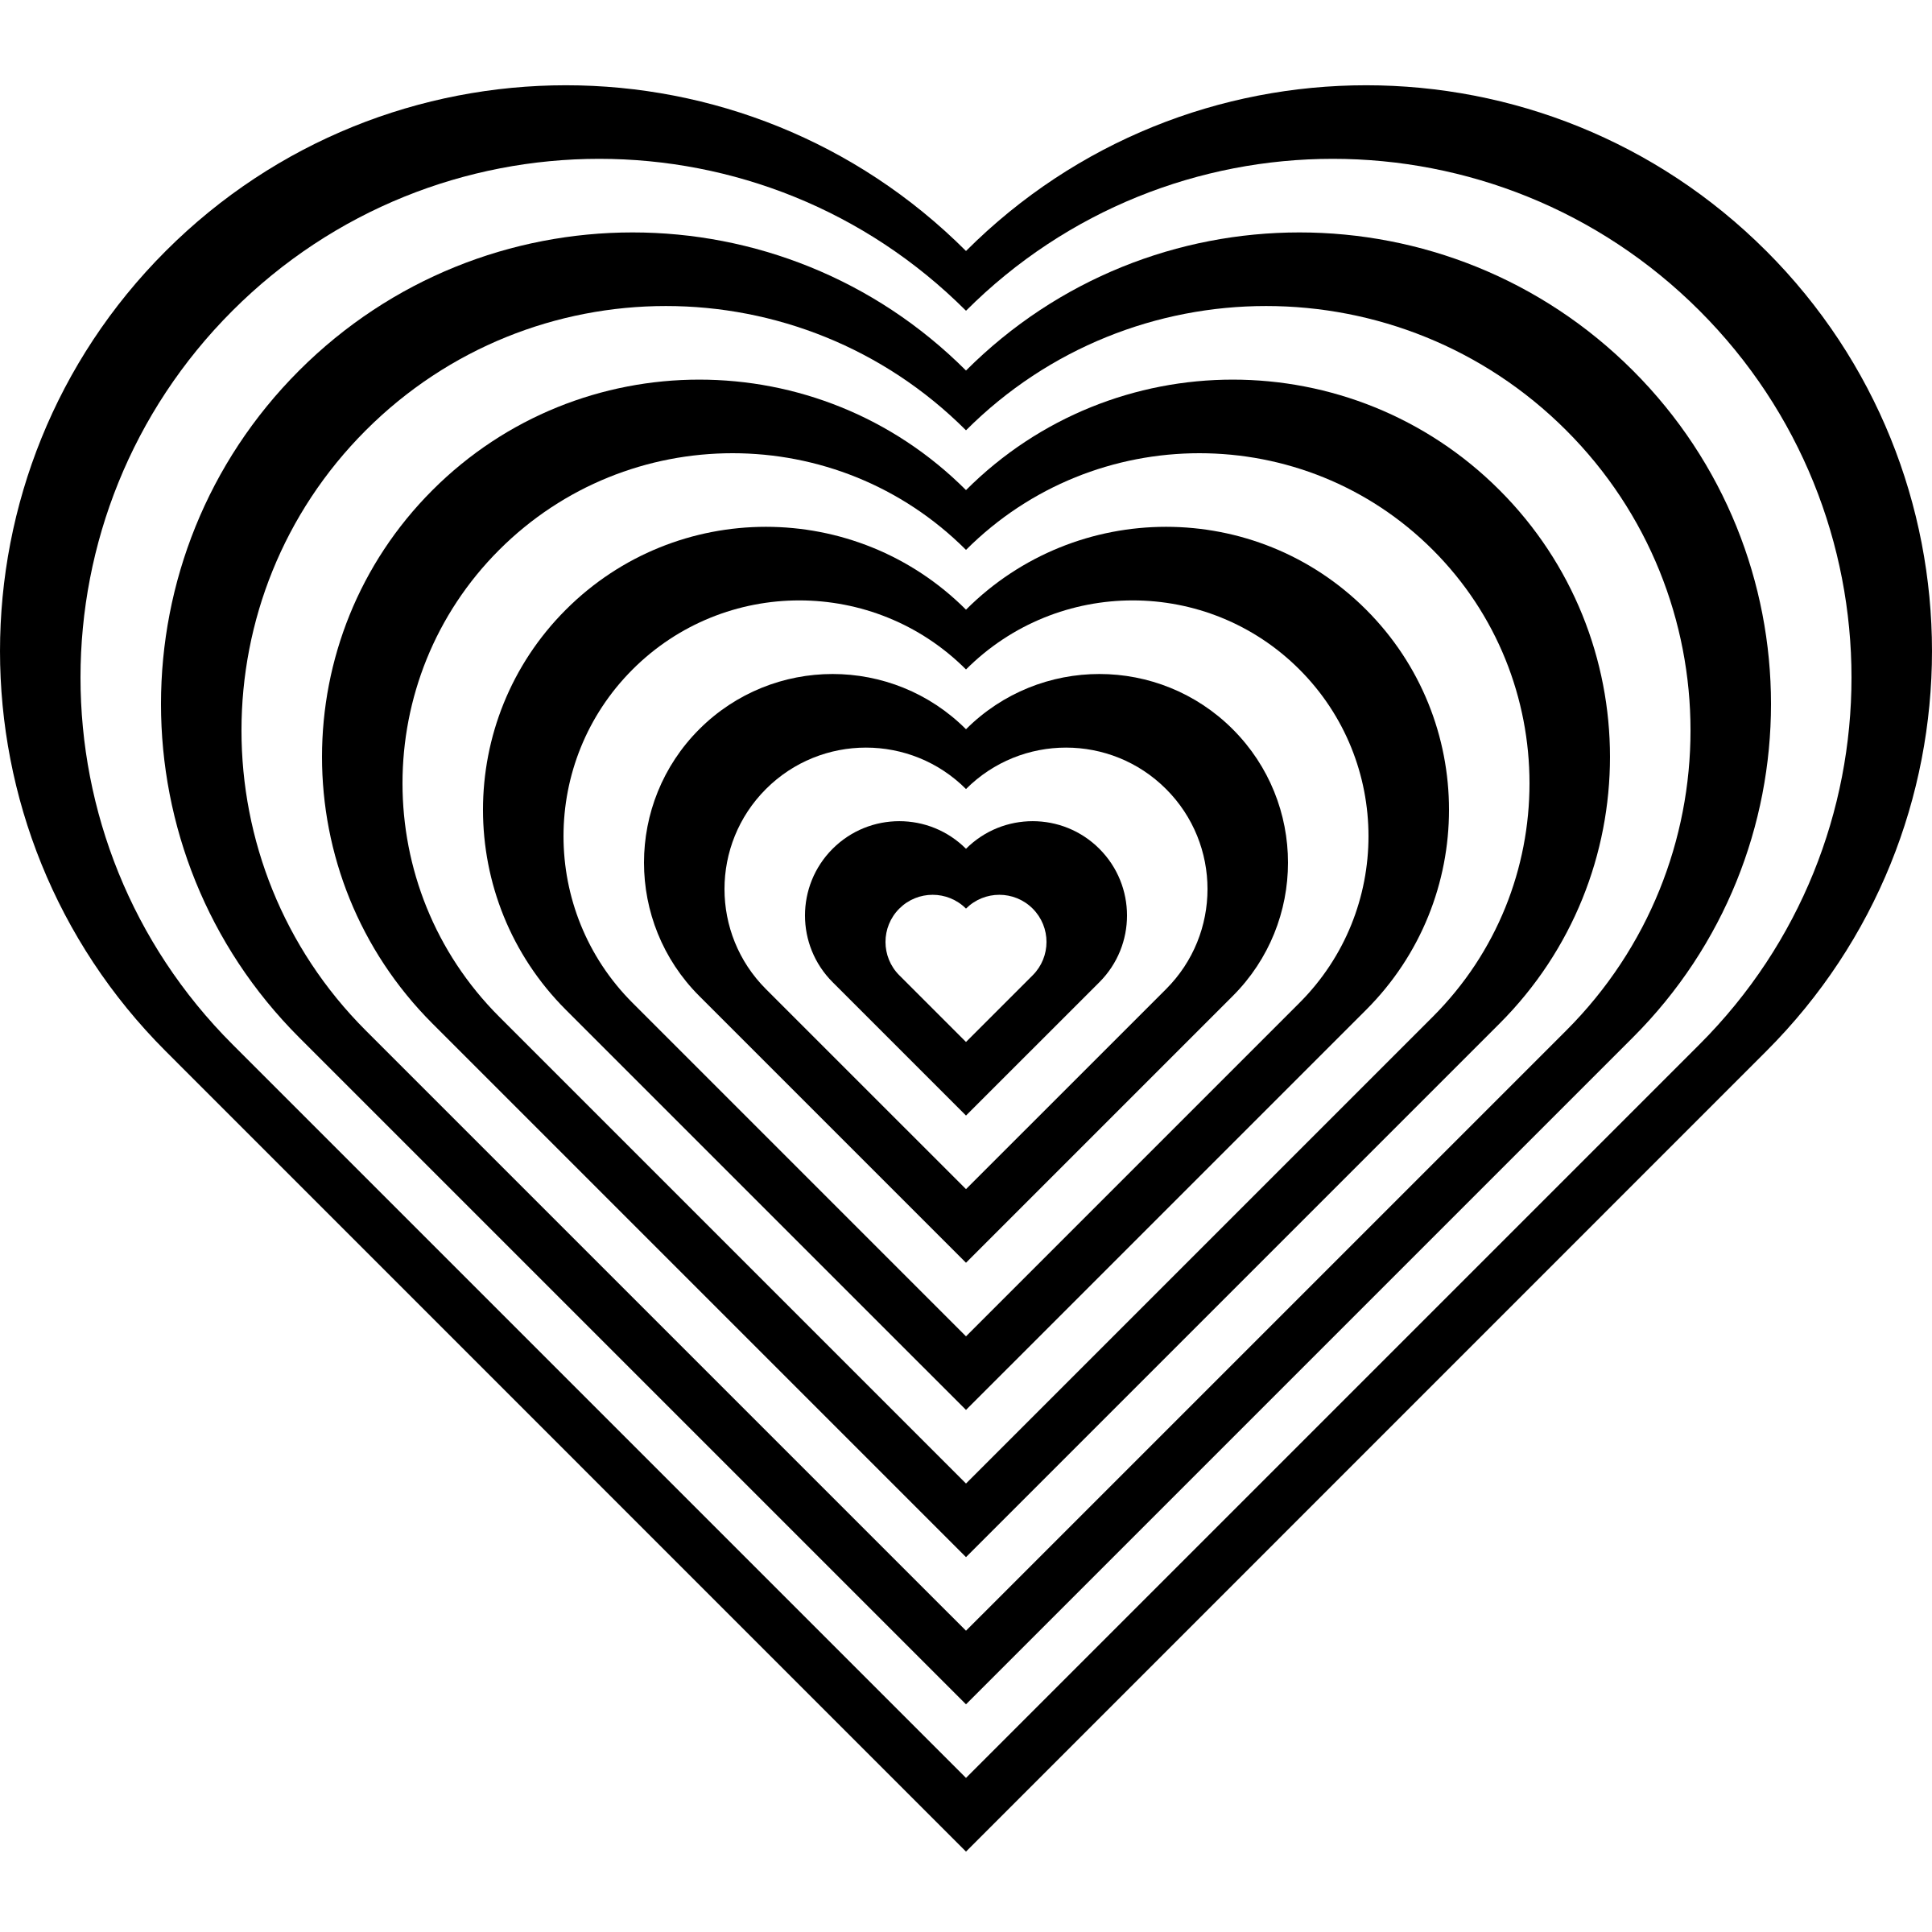 Heart-shaped clipart half heart Heart geometric Clipart heart zebra